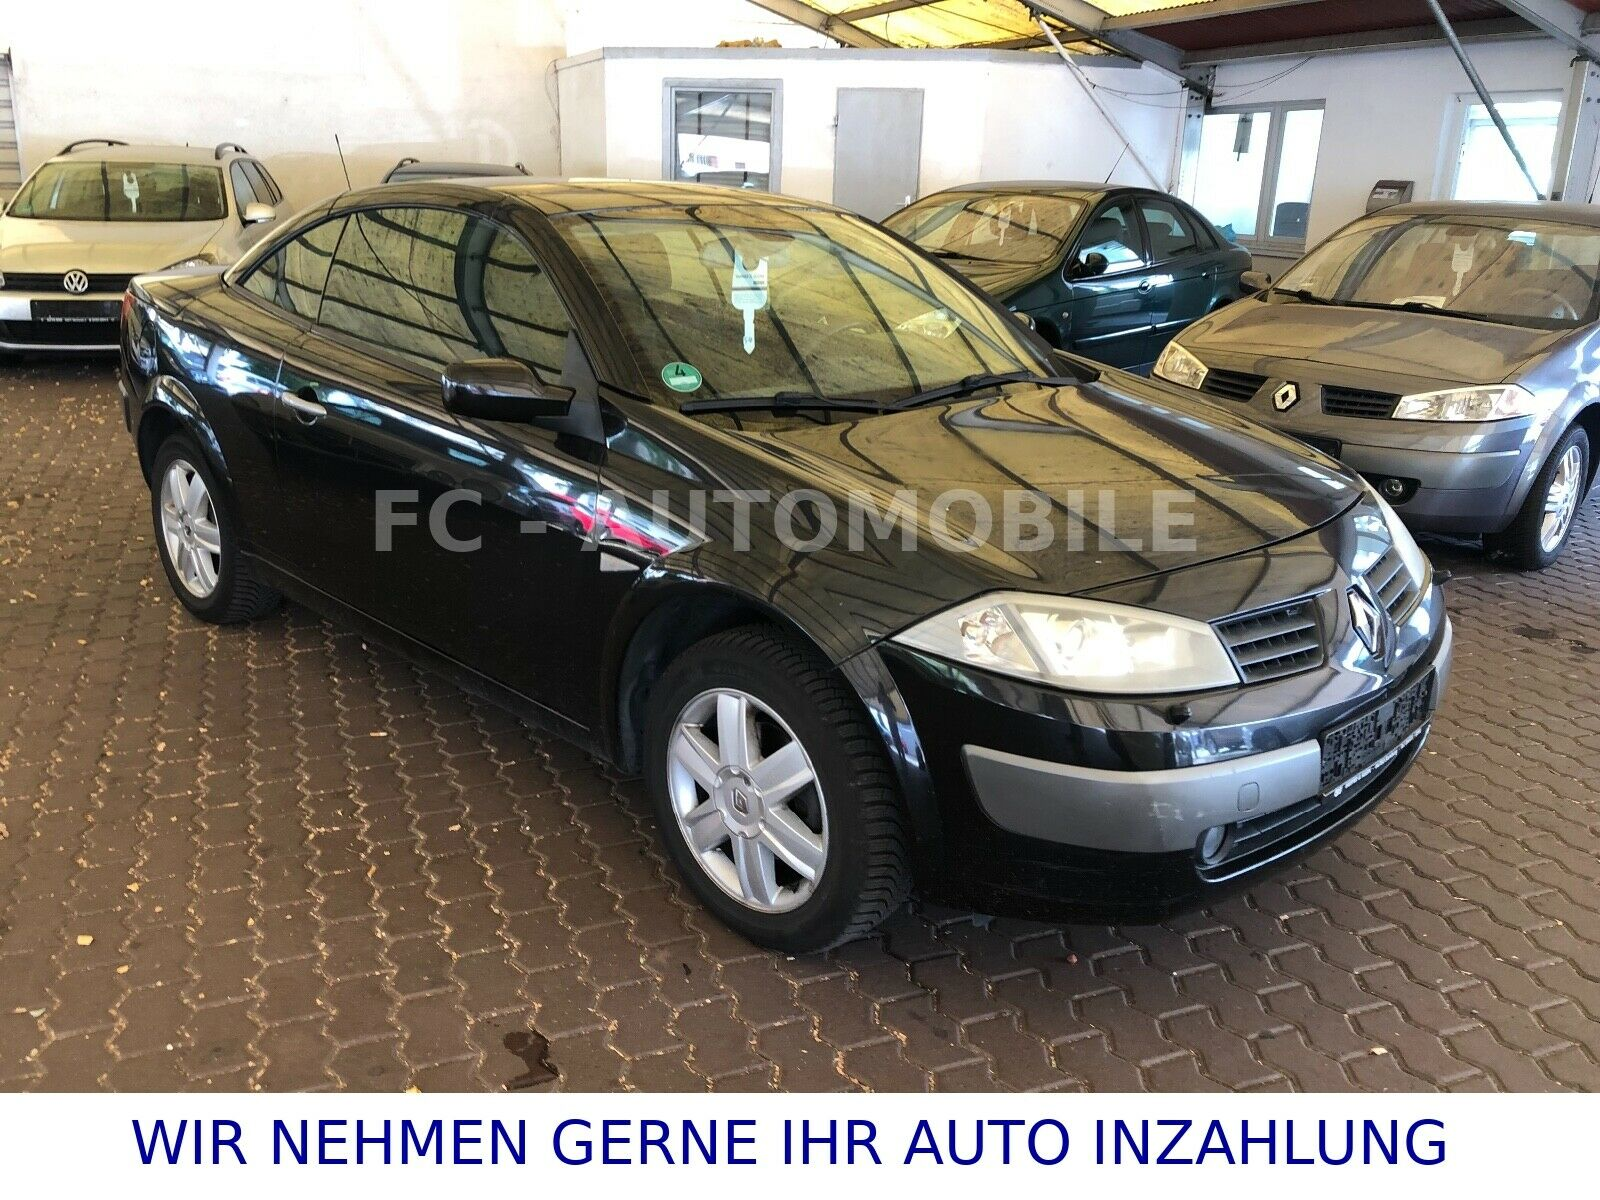 RENAULT Megane II Coupe/Cabrio Dynamique Luxe